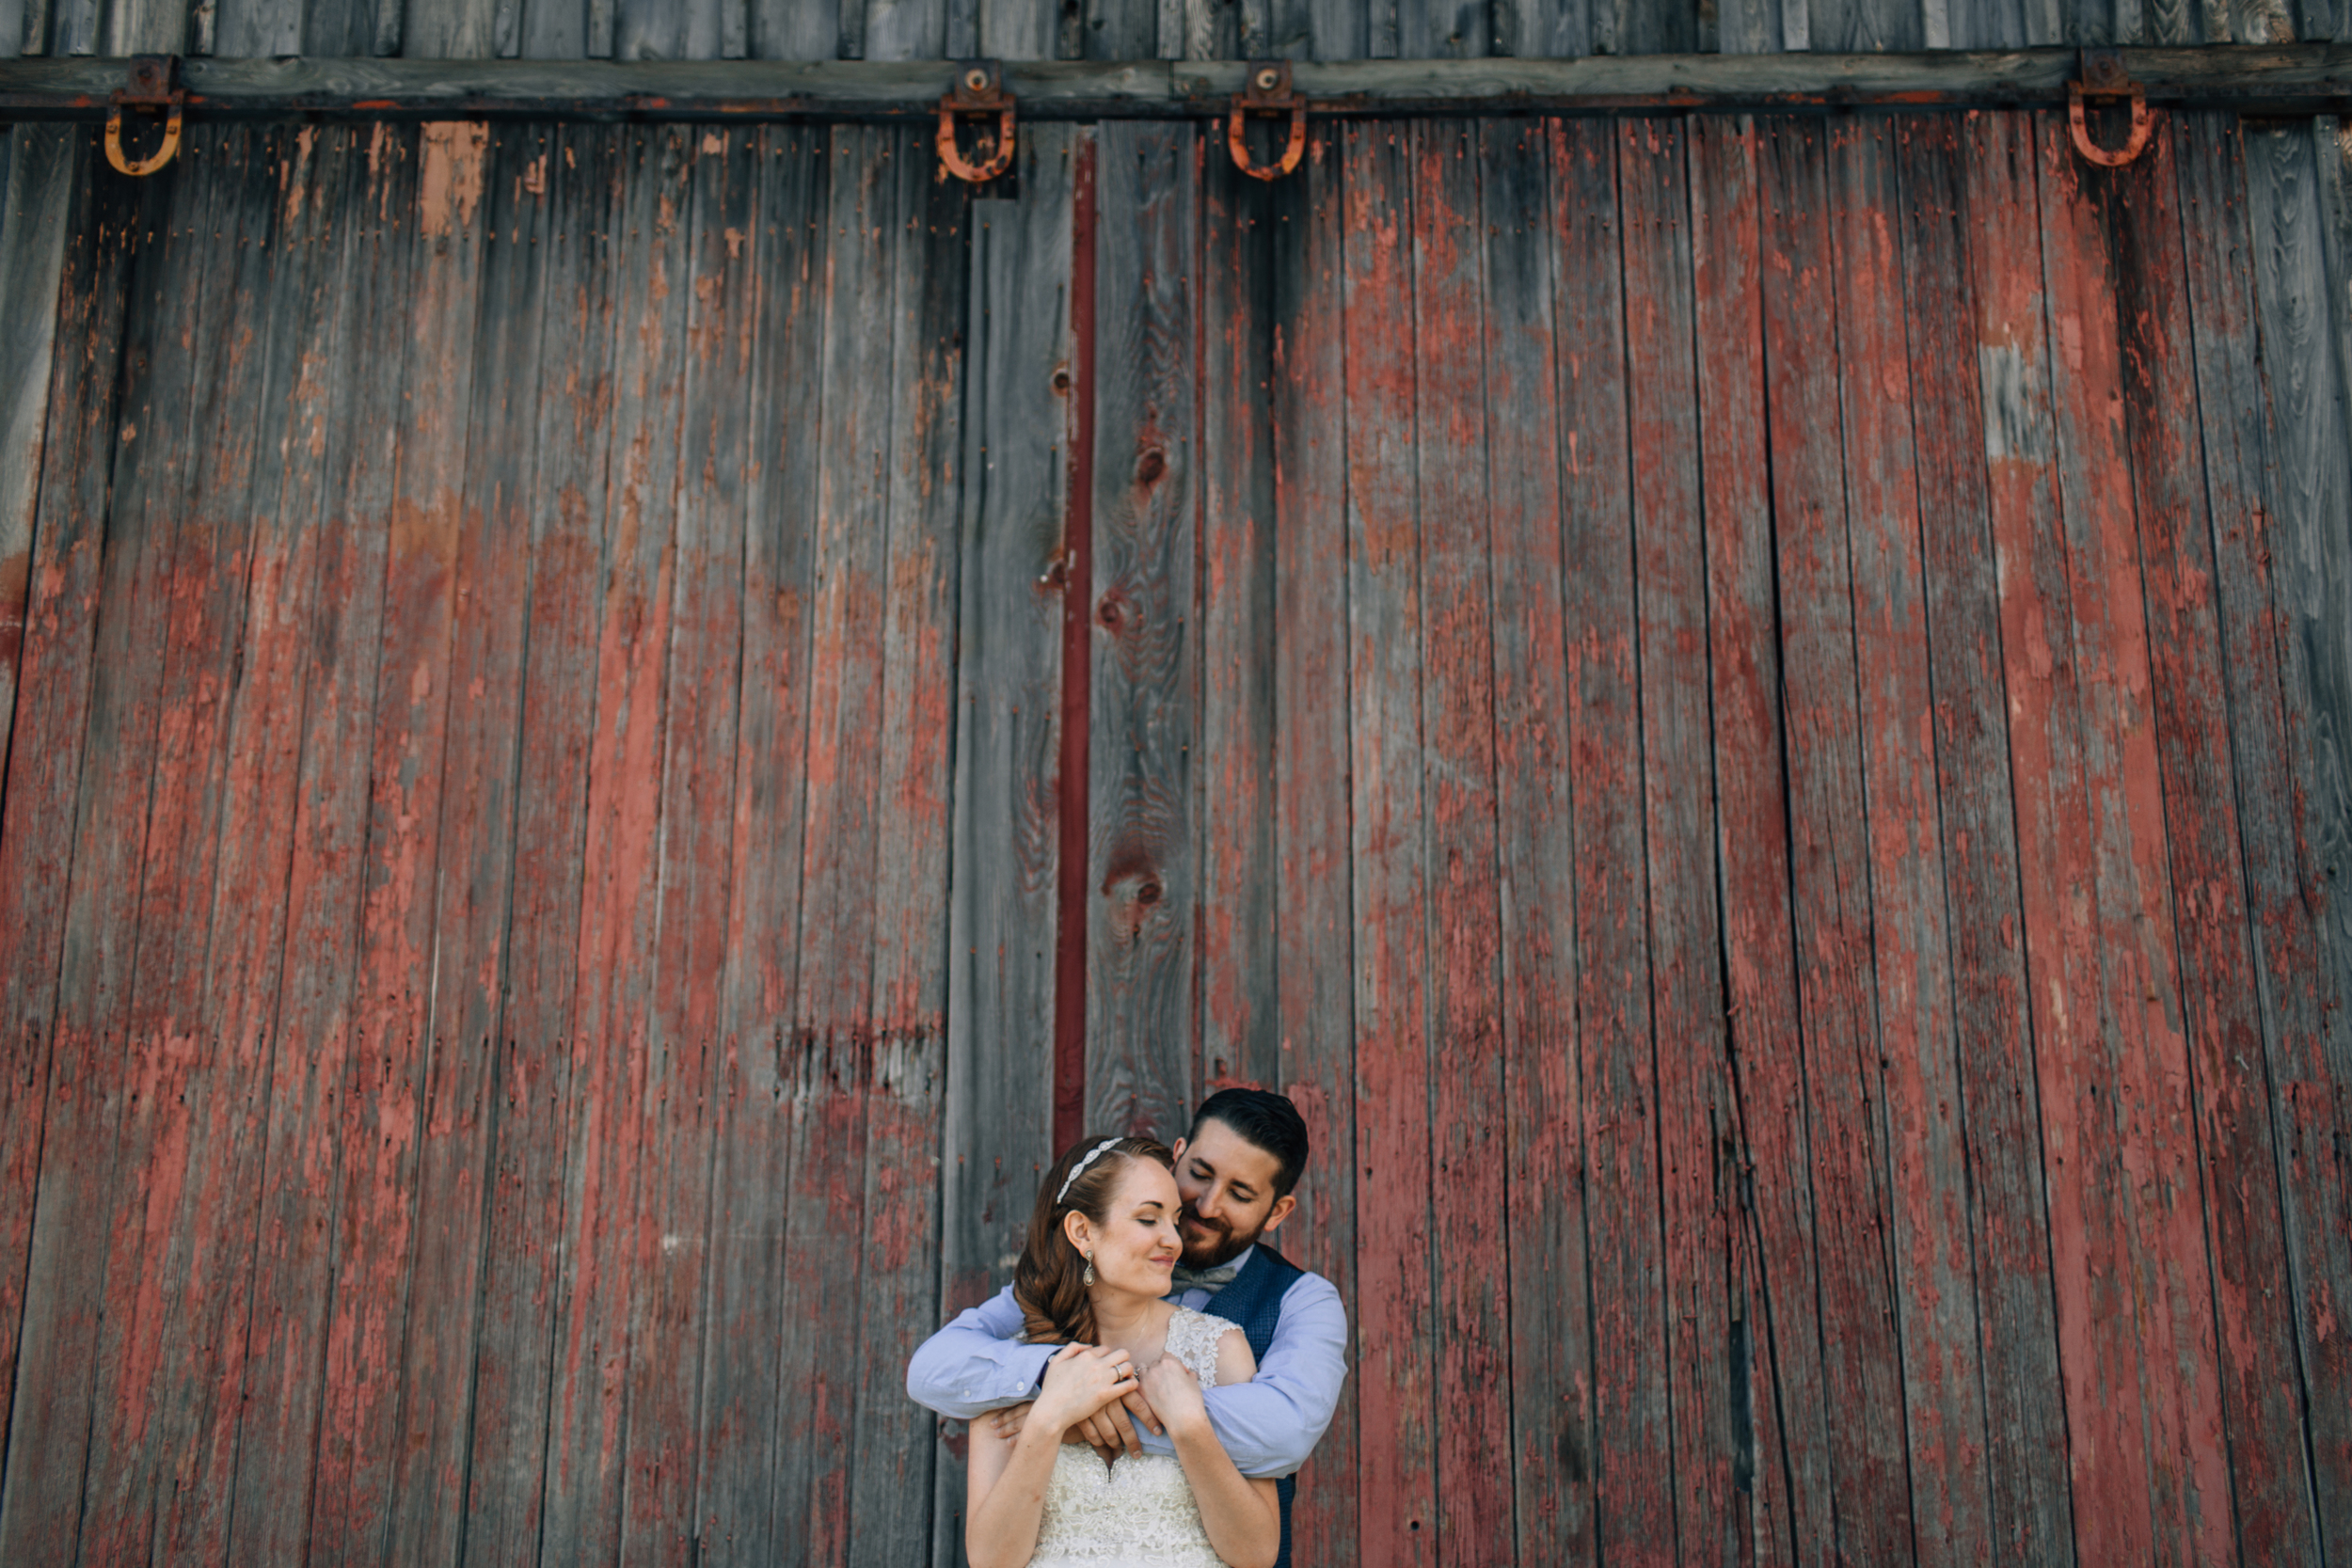 KELLIandBRADweddingJUNE2015 - portraits (69 of 142).jpg